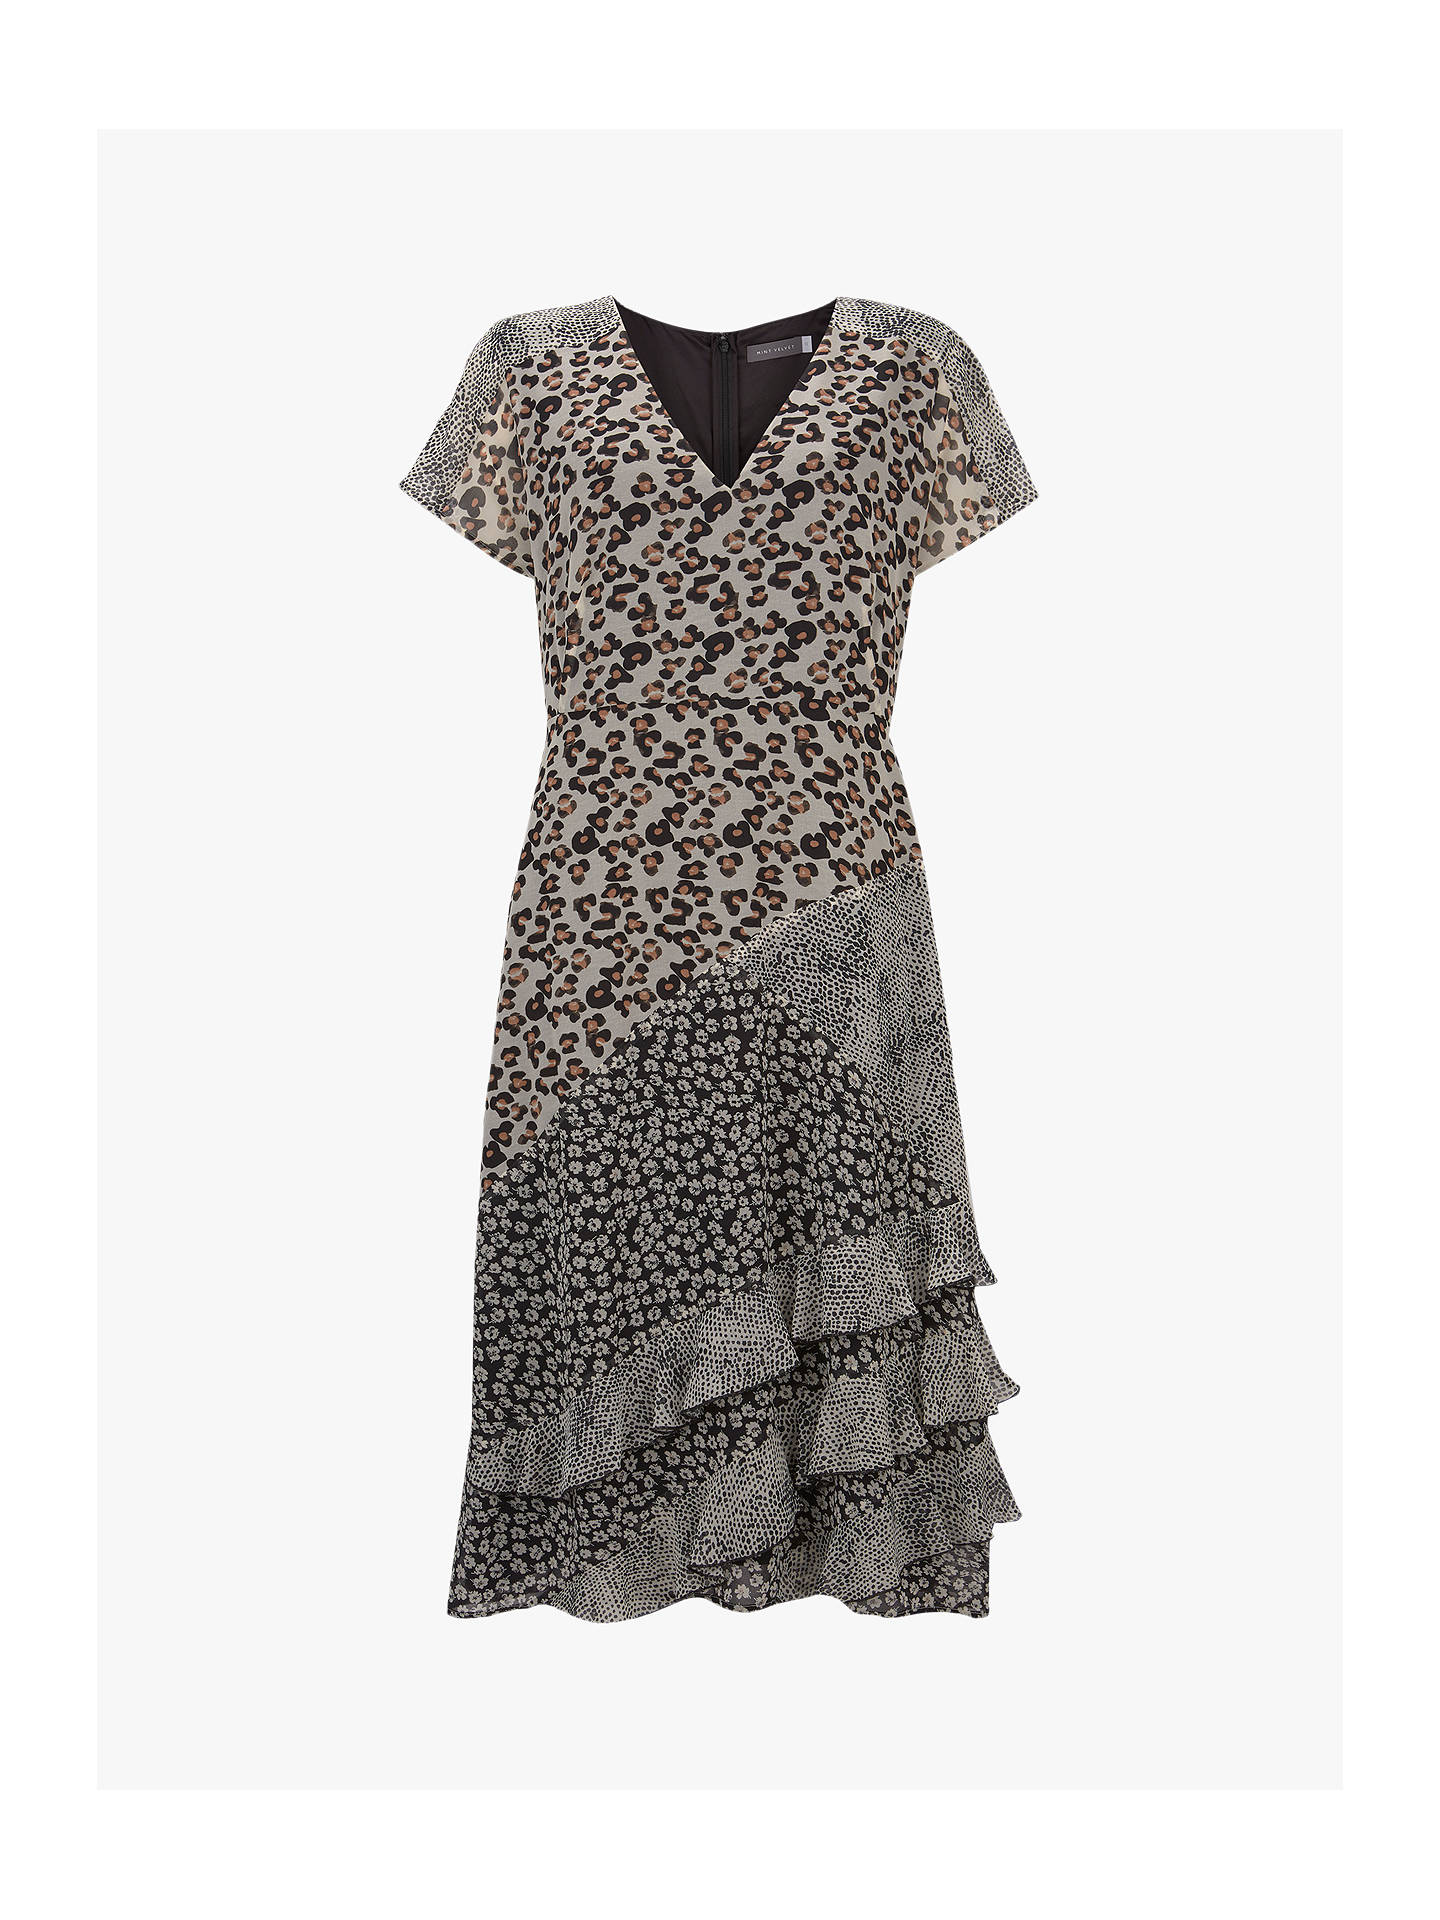 BuyMint Velvet Animal Print Ruffle Dress 3231dd285